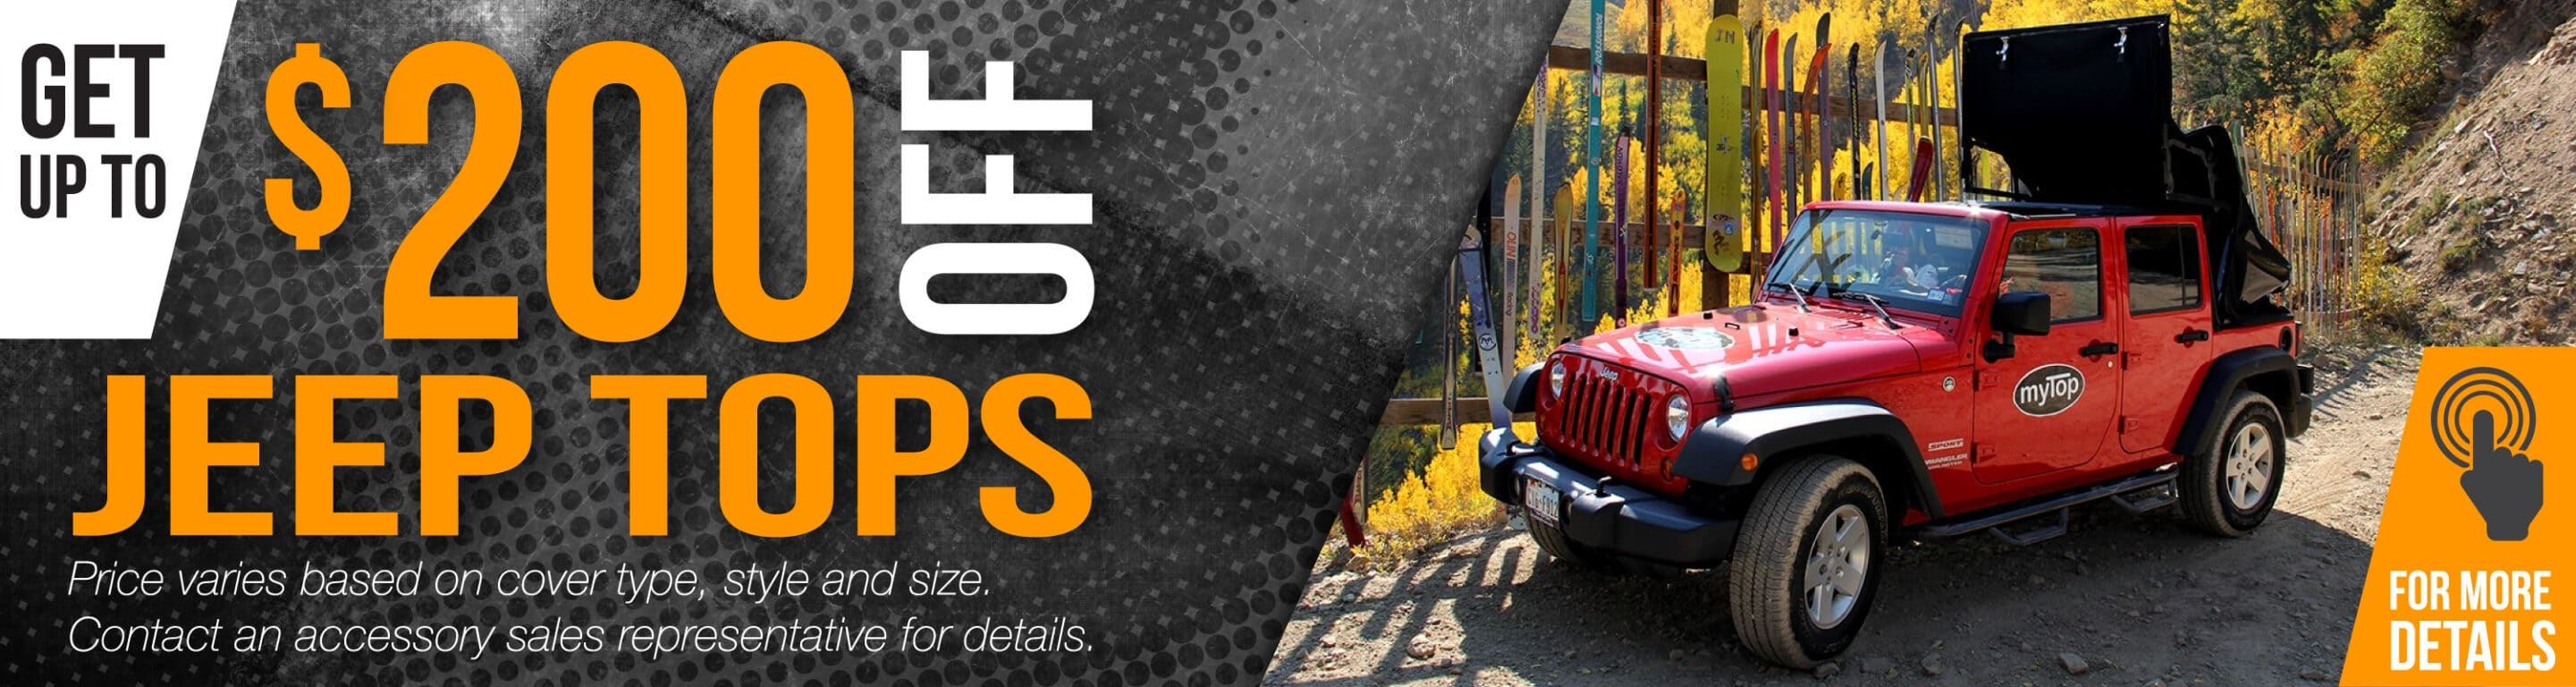 Red Jeep - Get up to $200 off Jeep Tops